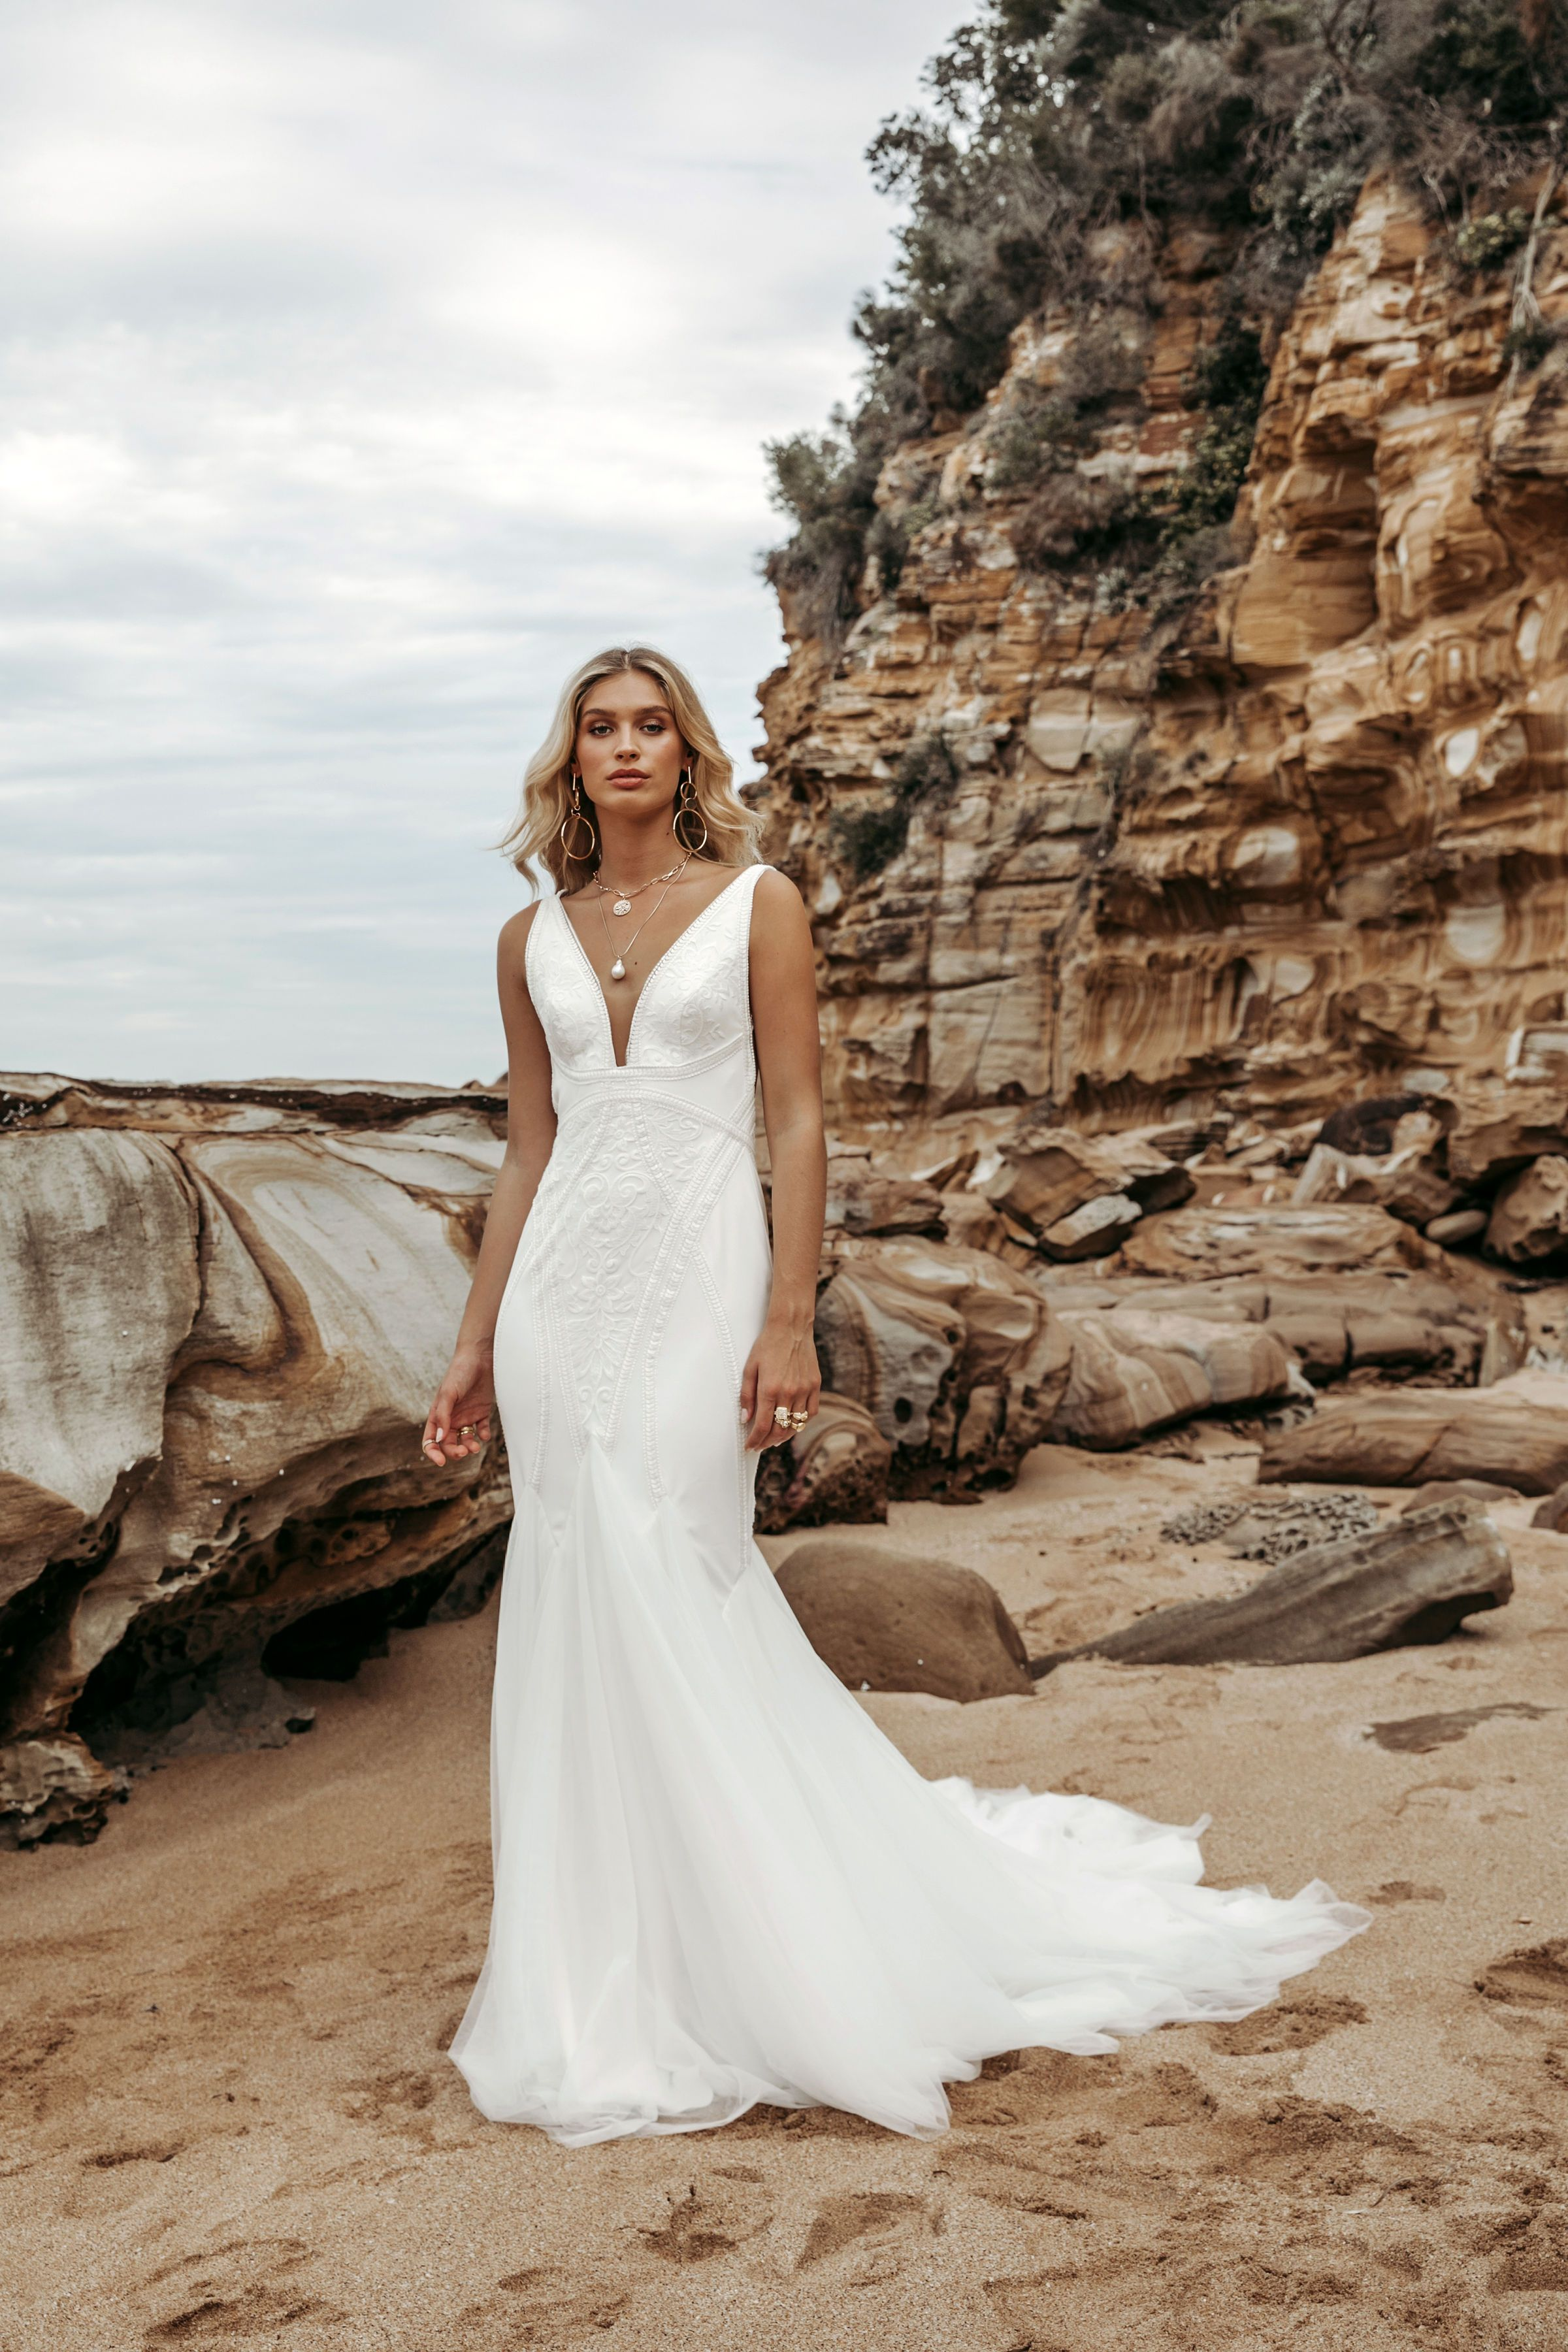 Designed For The Fashion Forward Bride Bodie Is A Clever Mix Of Unconventional Design Lines On A C Indie Wedding Dress Stylish Wedding Dresses Wedding Dresses